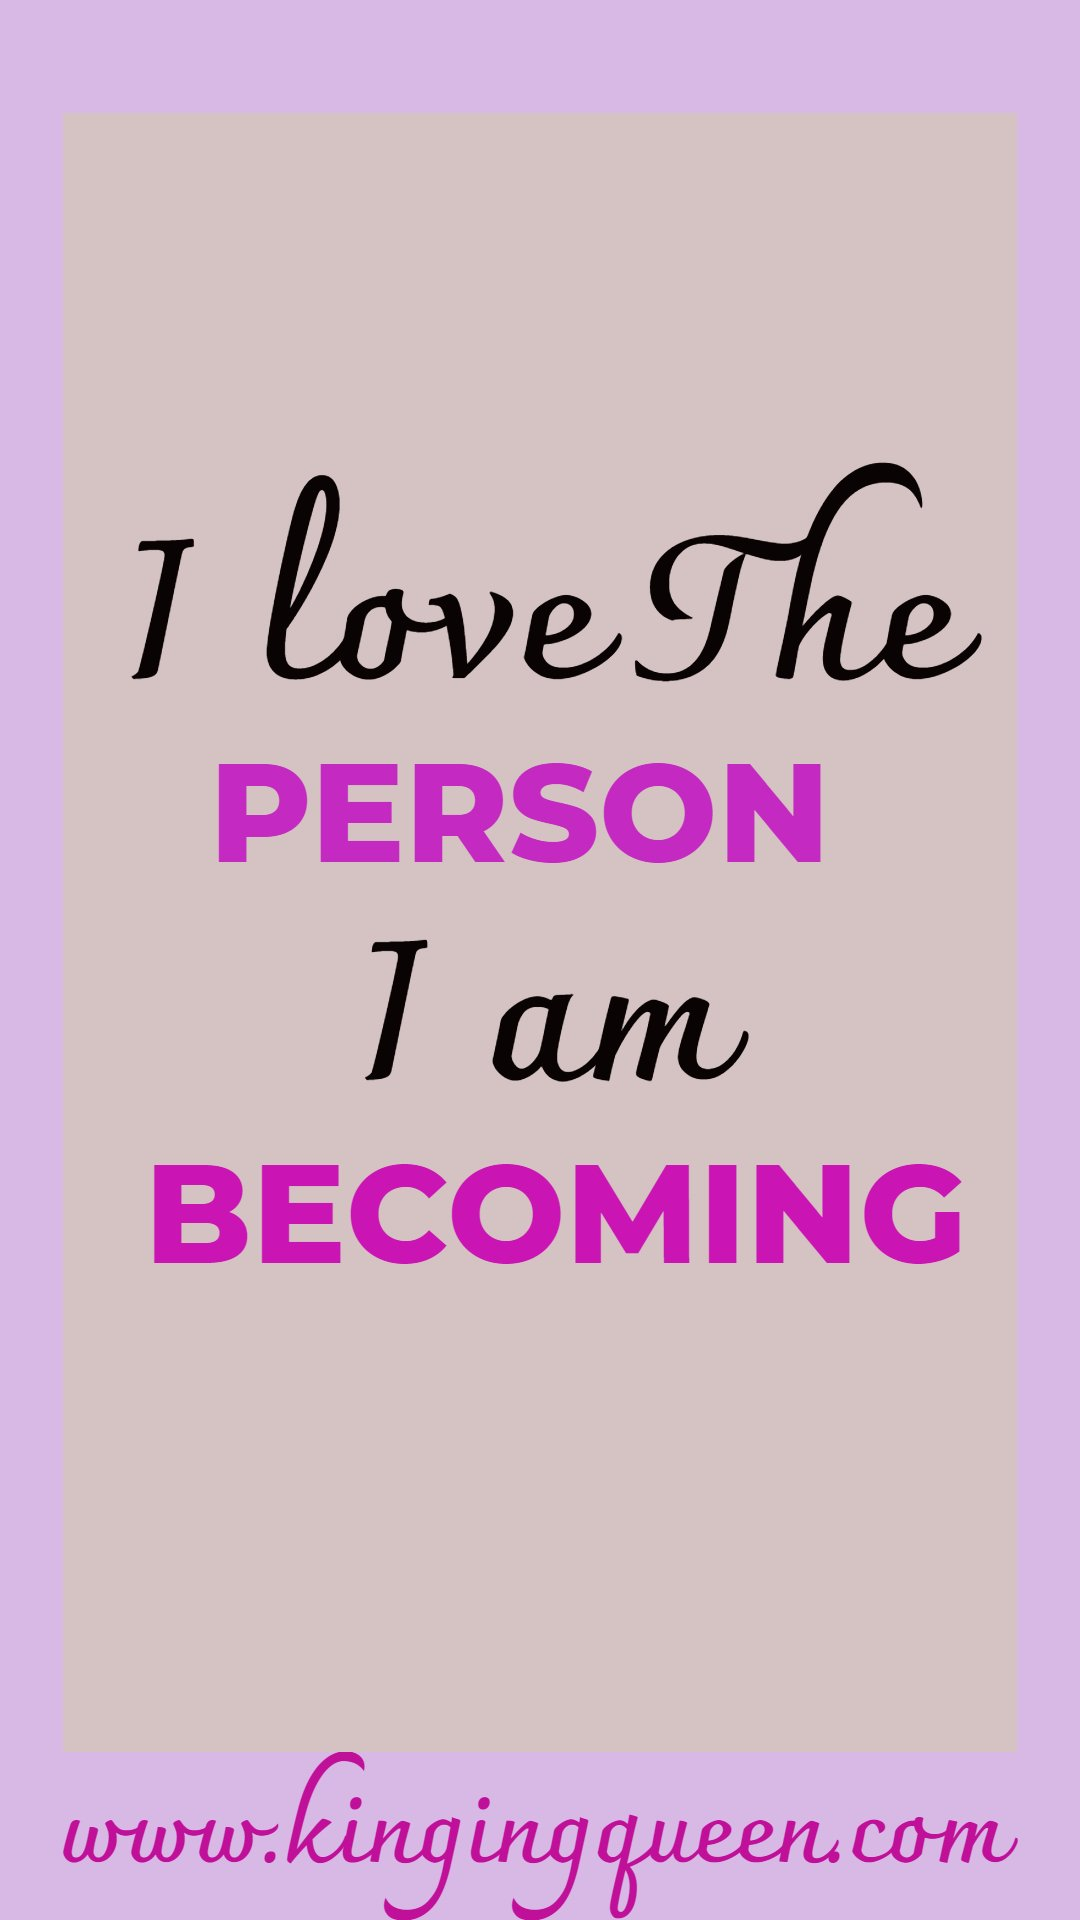 graphic showing I love the person I am becoming self love affirmations